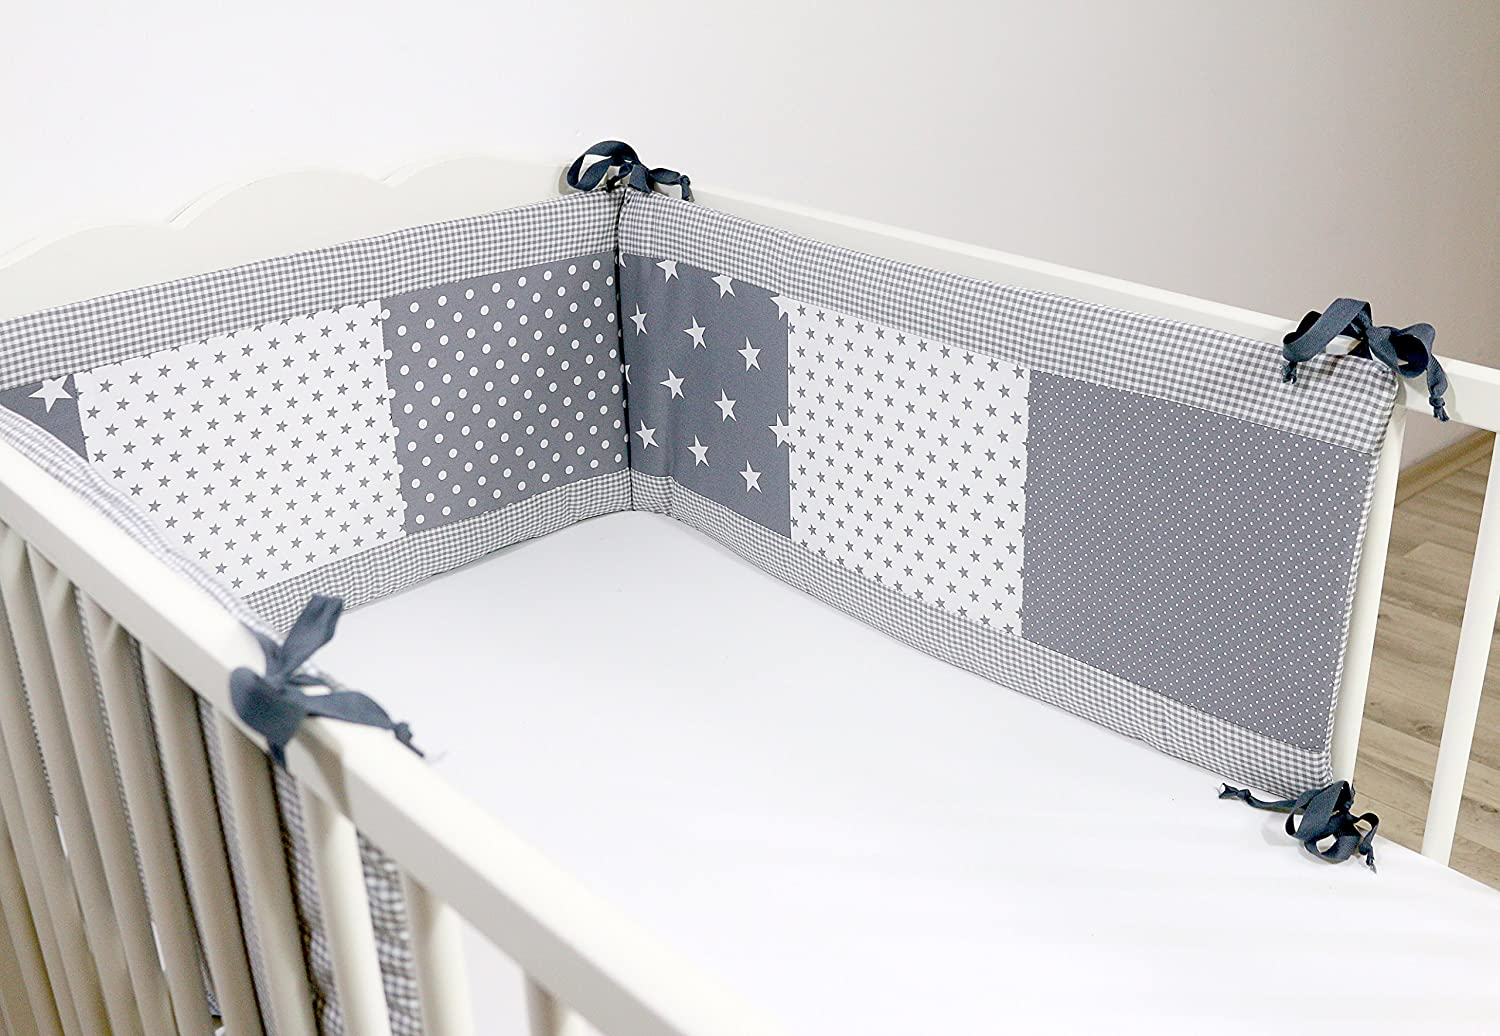 ULLENBOOM ® bumper – grey stars (420 x 30 cm cot bumper for babies, cot bumper pads for the head area of 140 x 70 cm cots;) cot bumper pads for the head area of 140 x 70 cm cots;) N-GS-420